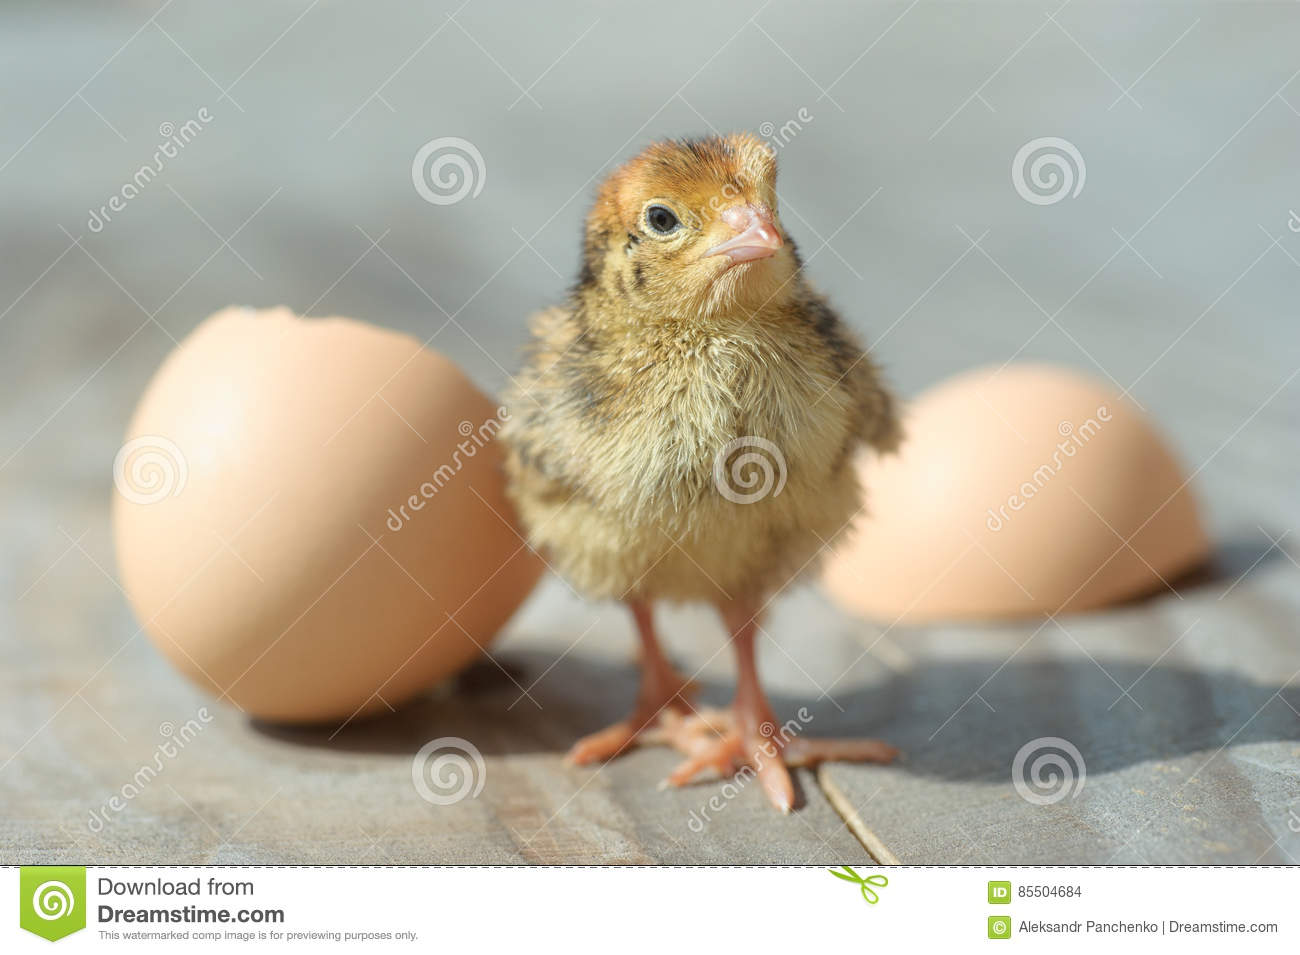 Baby chicks pictures only